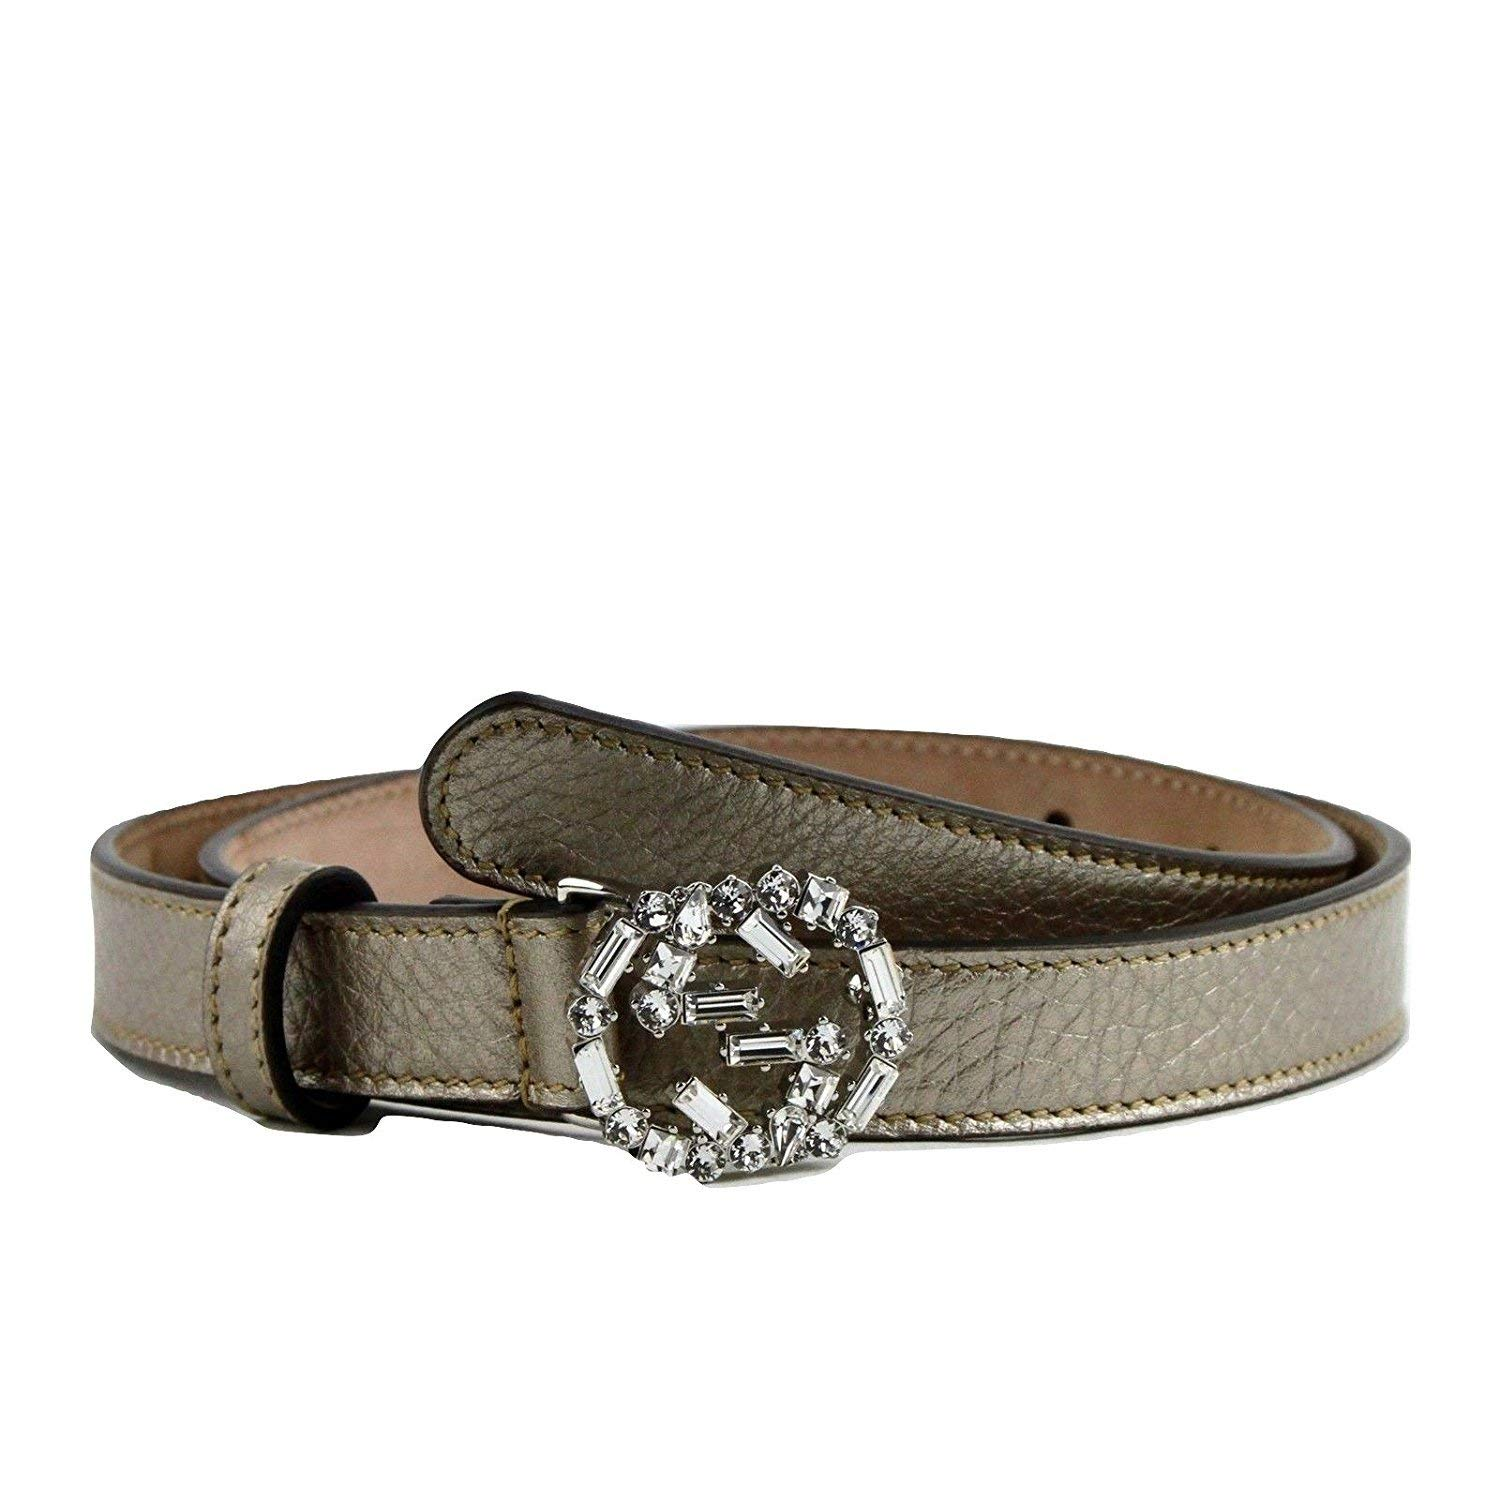 Gucci Women's Metallic Beige Leather Skinny Belt Crystal Interlocking G Buckle 354380 9524 (105/42)